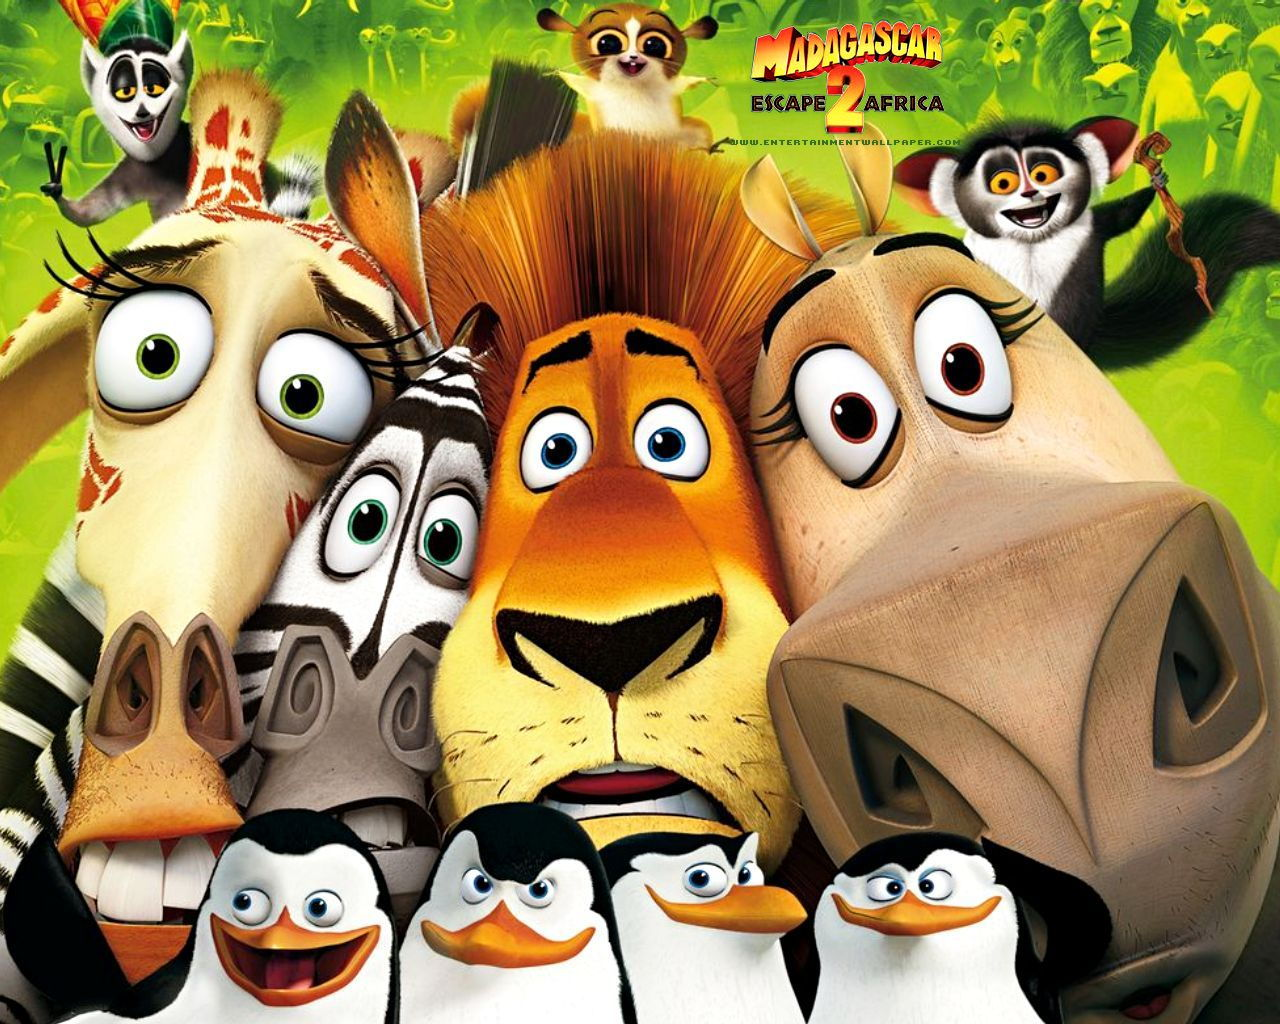 Download madagascar escape 2 africa through free movie torrents at